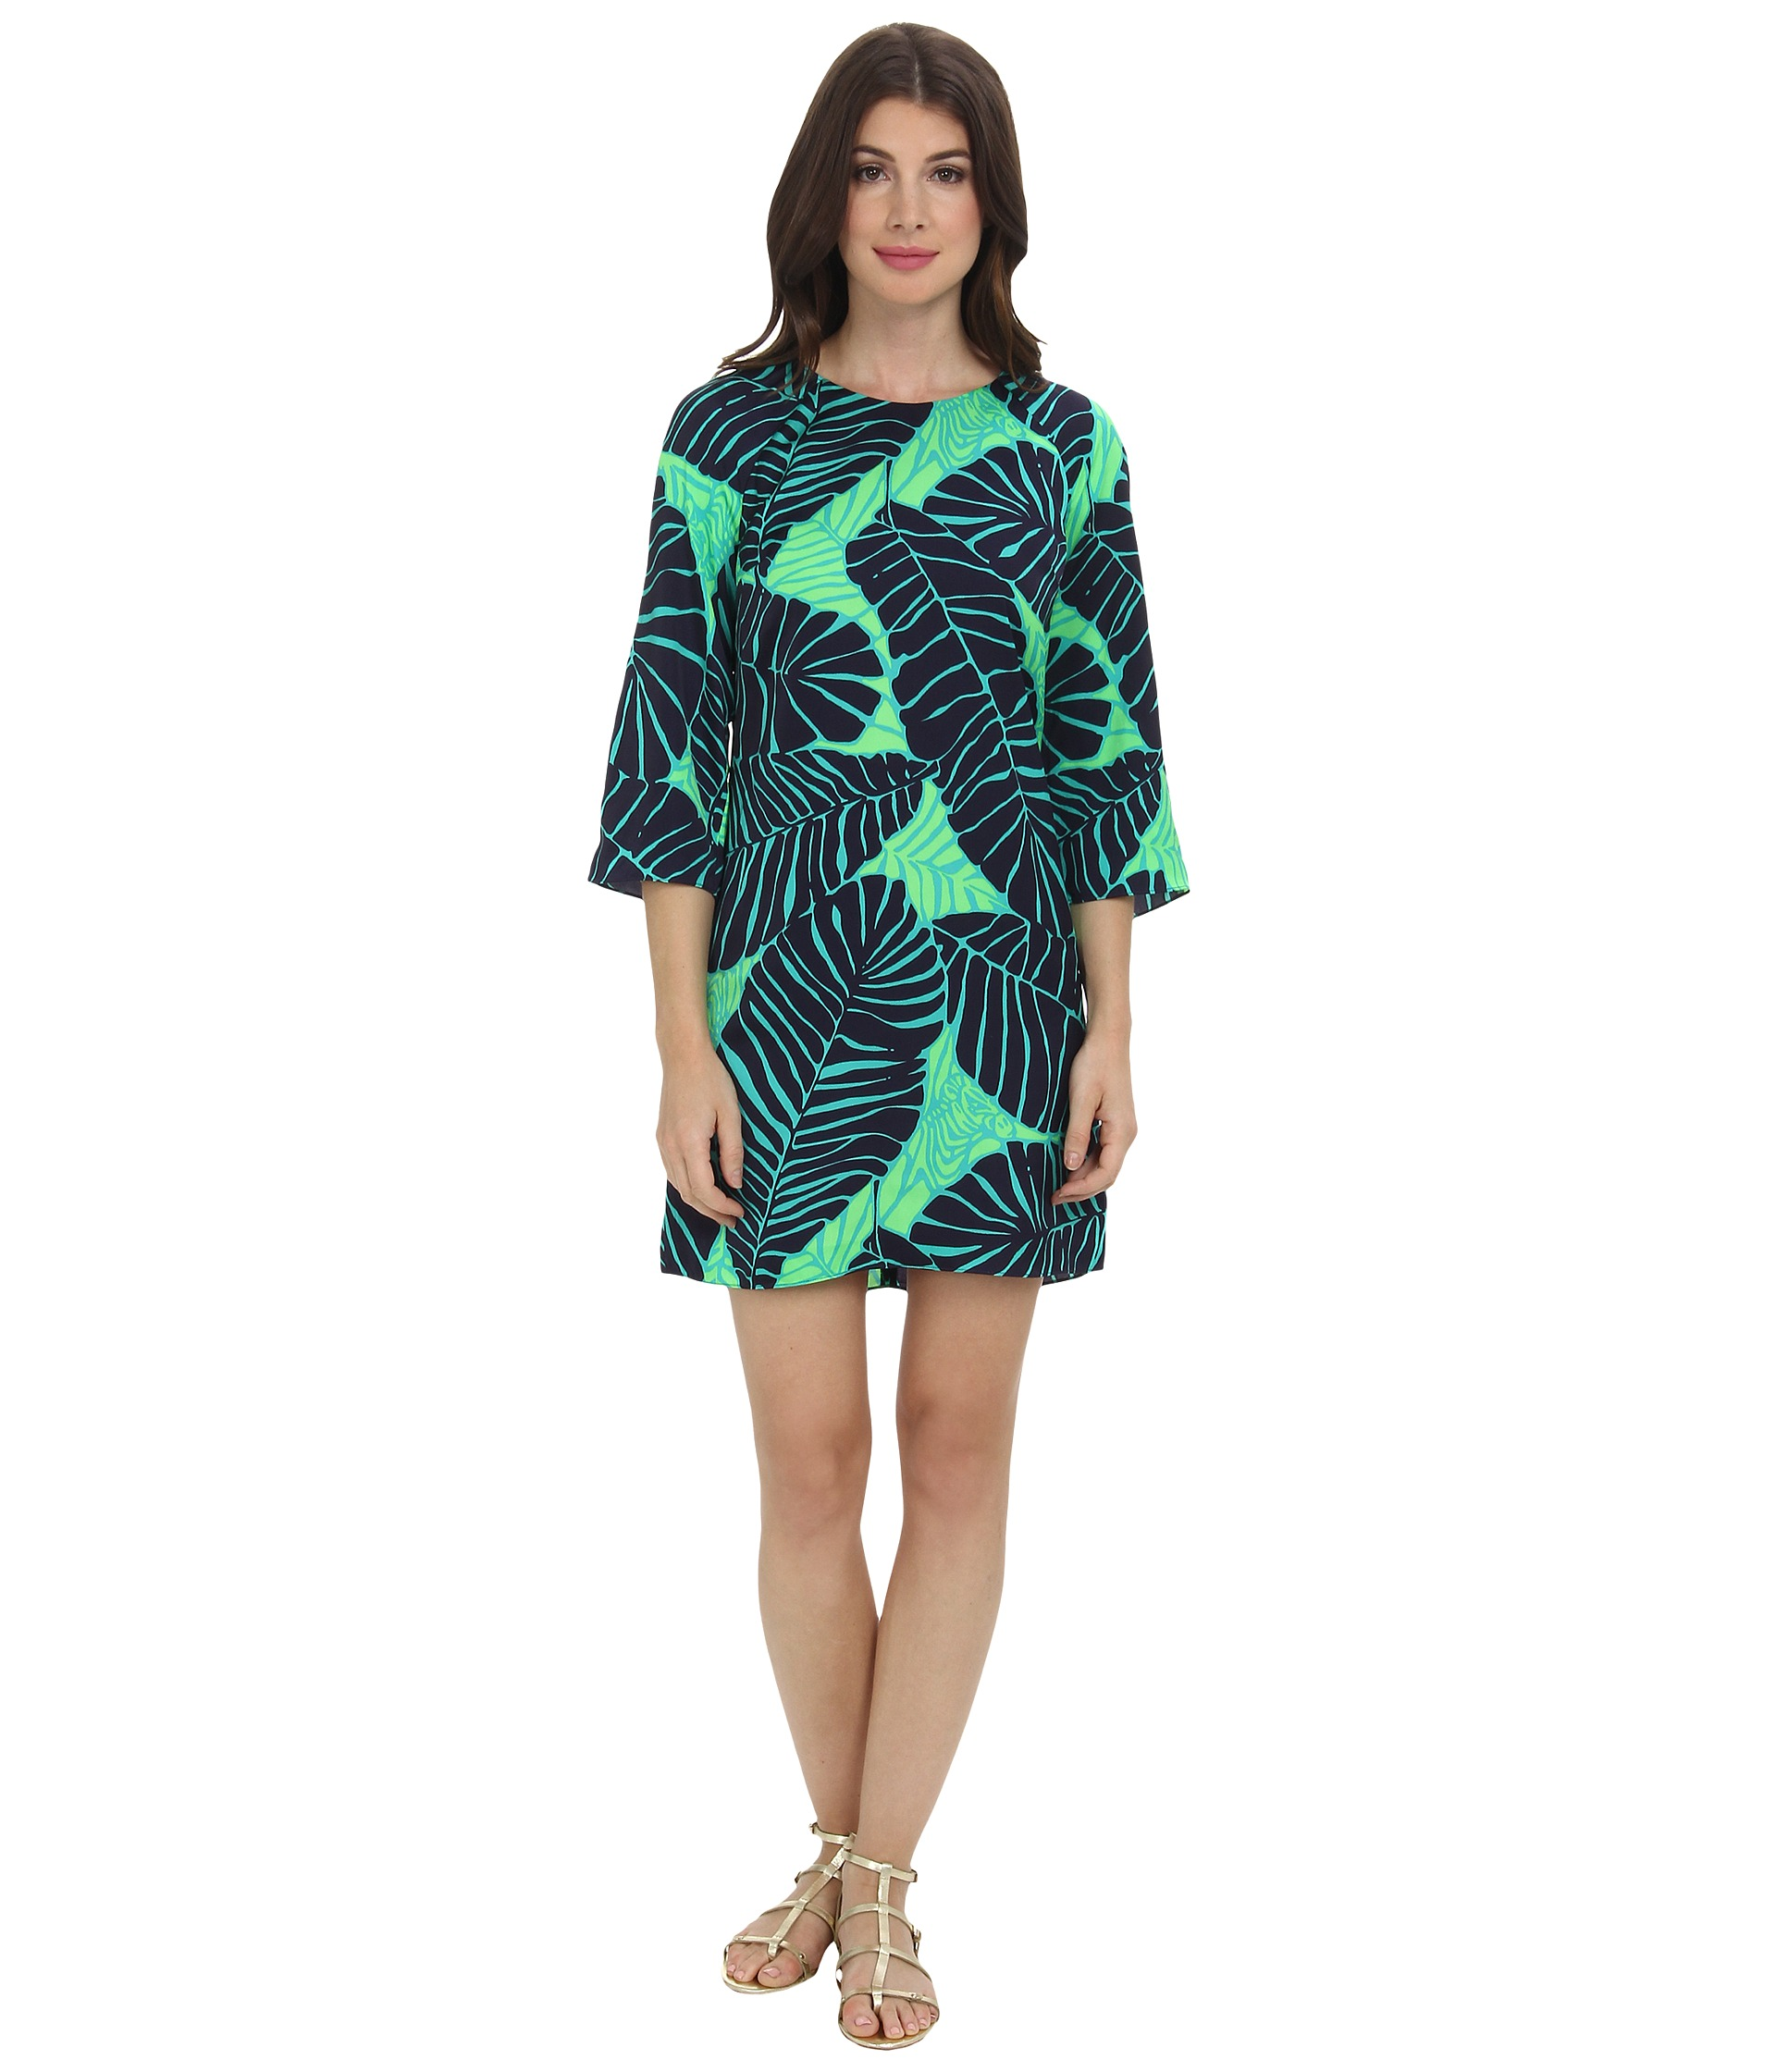 Lilly Pulitzer Sale Dresses Clearance Lilly Pulitzer Carol Shift